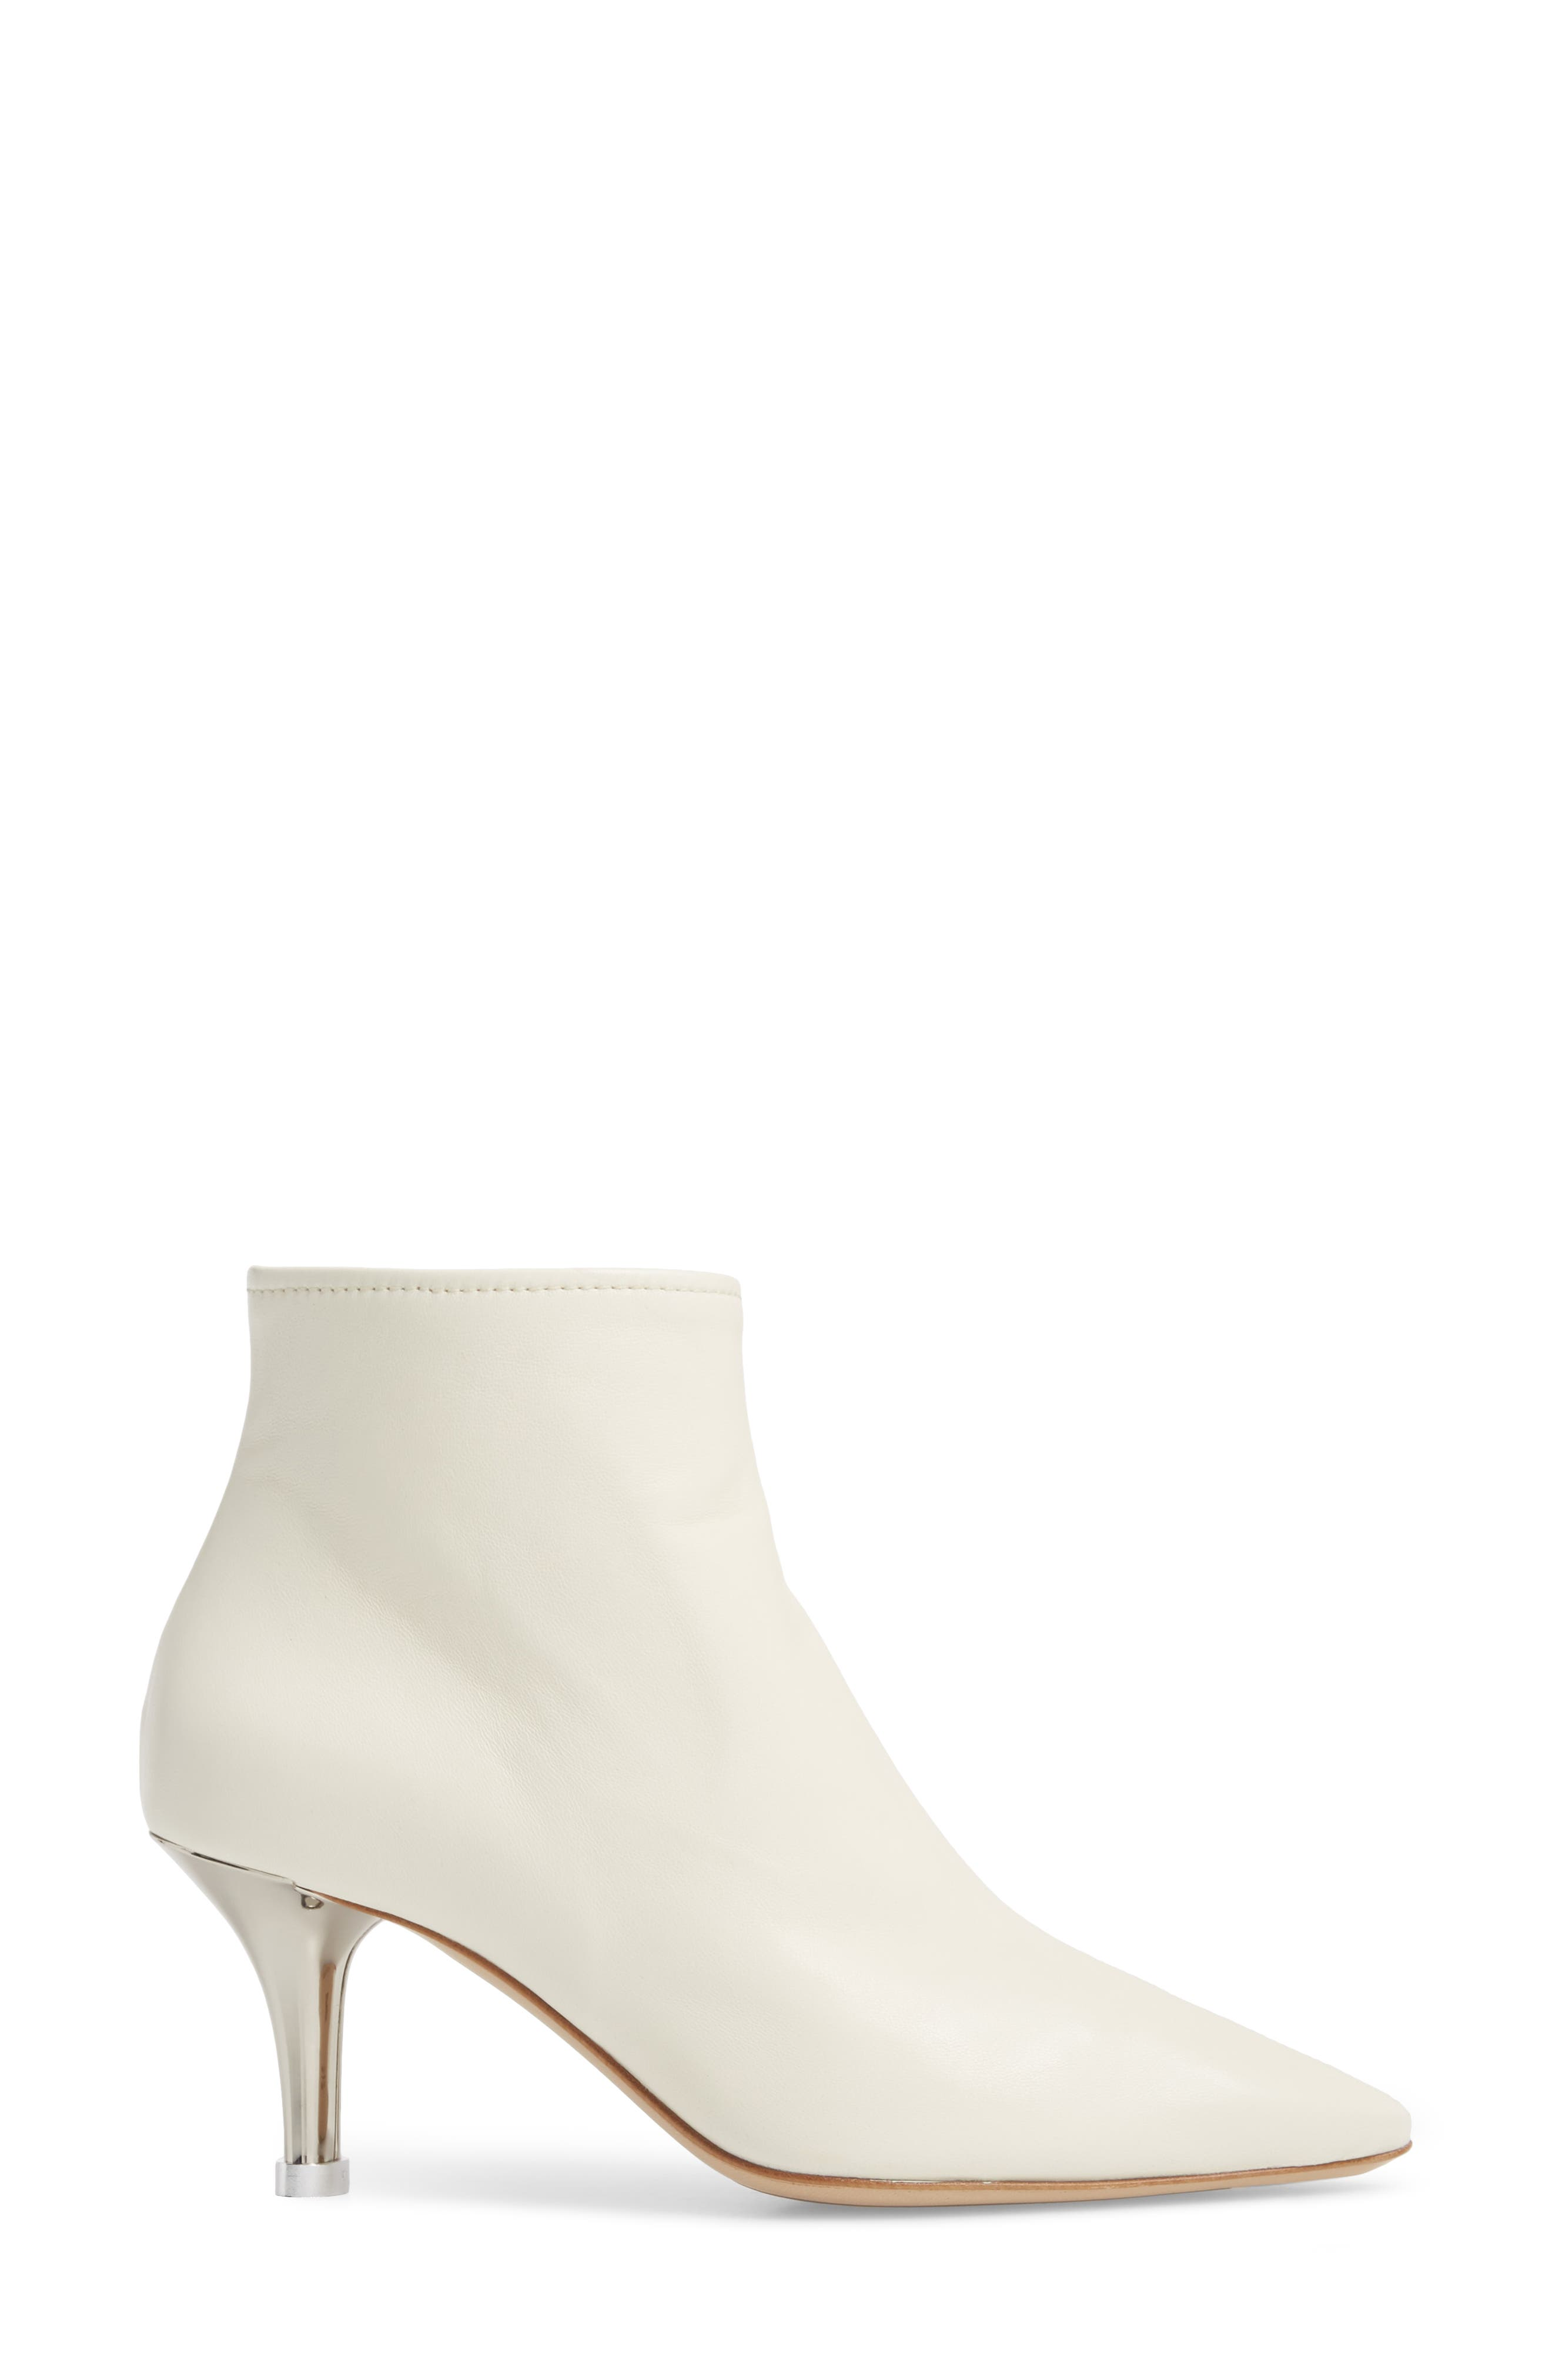 Summer Bootie,                             Alternate thumbnail 3, color,                             OFF WHITE LEATHER